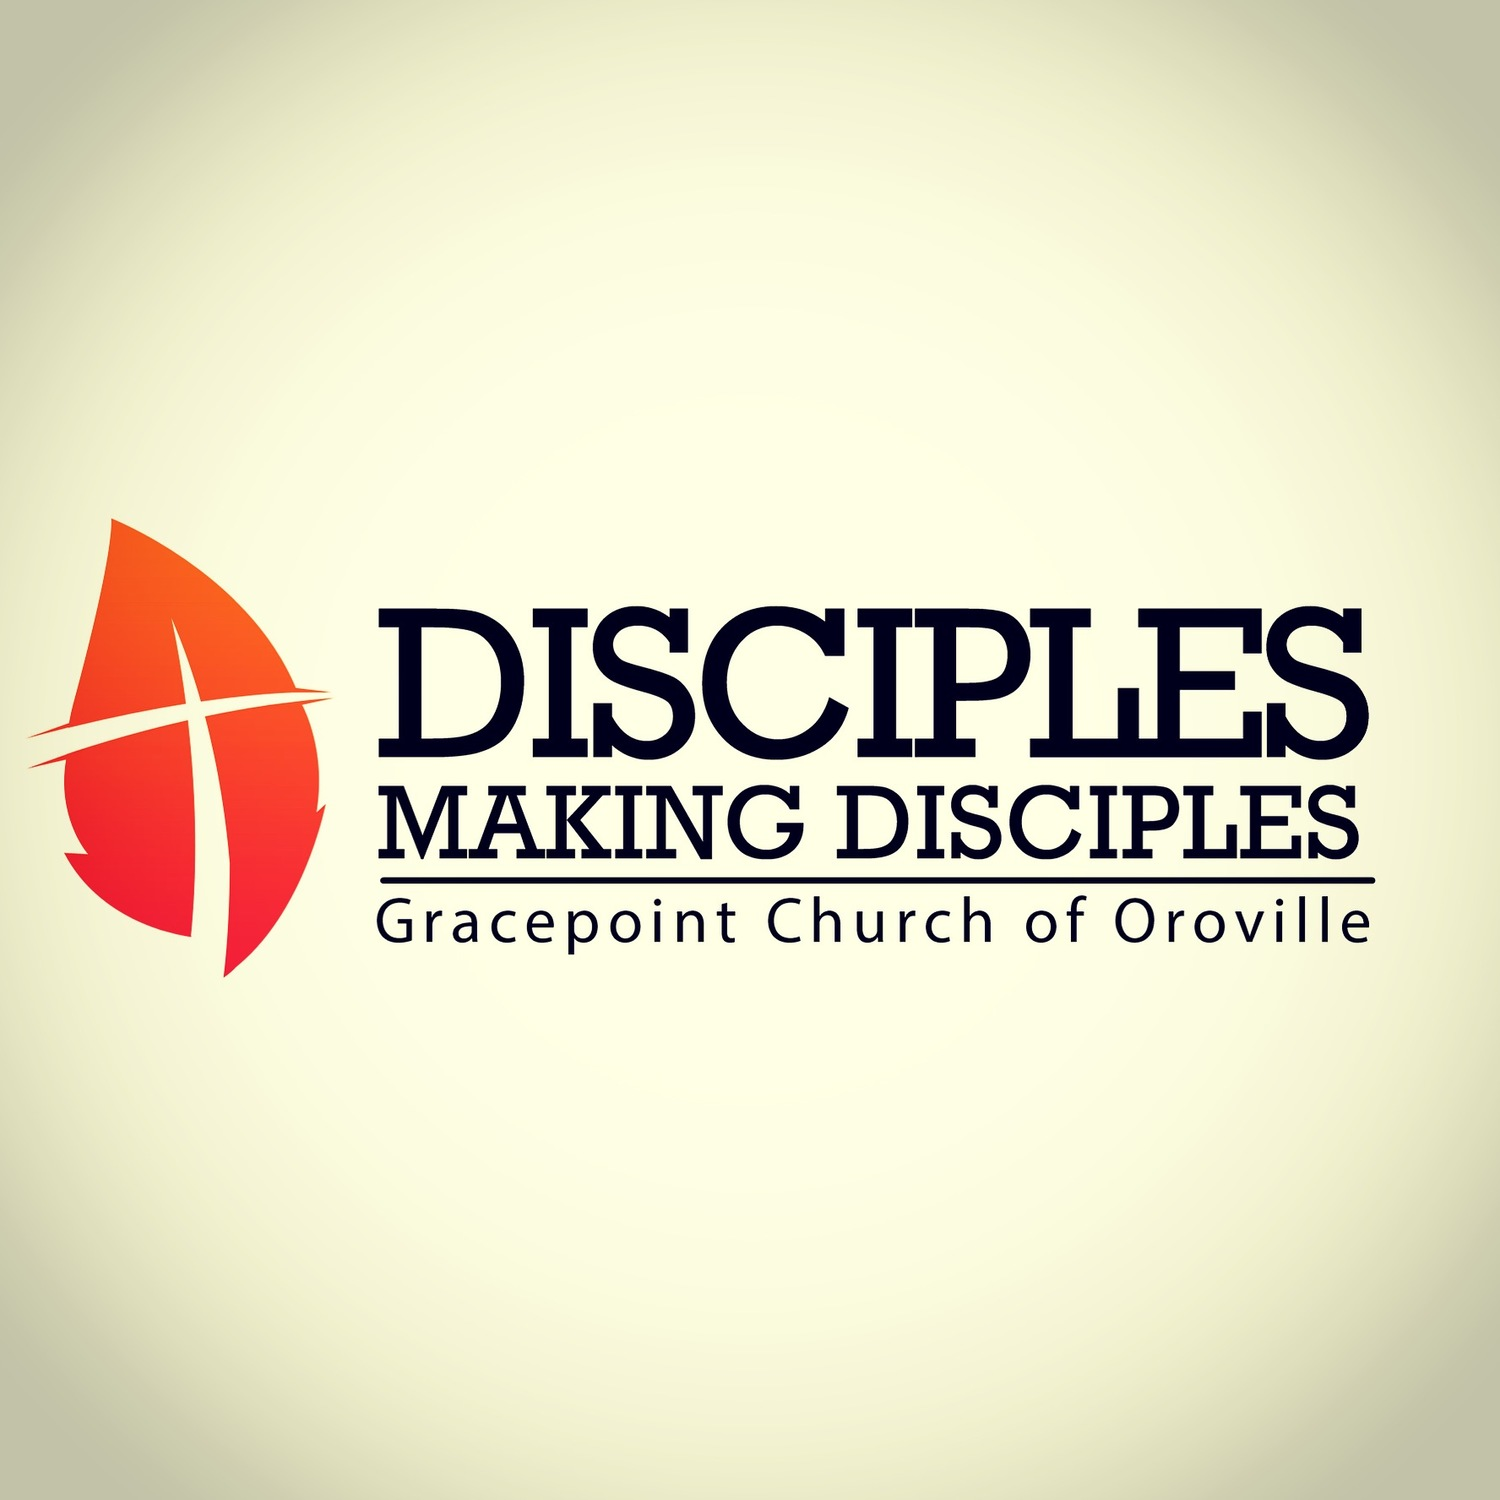 Gracepoint Church of Oroville - Gracepoint Church